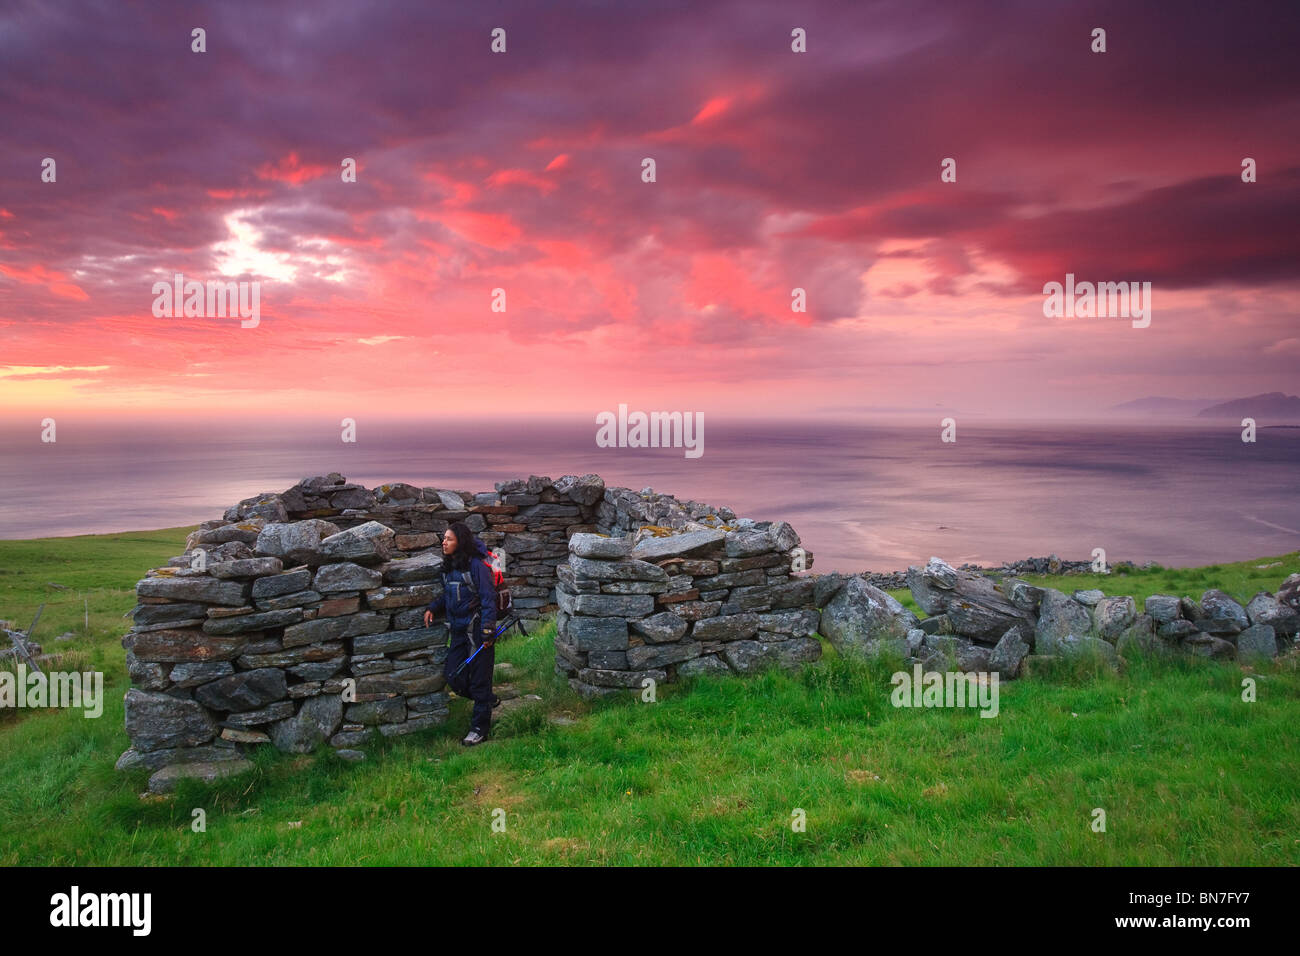 Colorful skies at sunset, and old stone shelter at the island Runde on the Atlantic west coast of Norway. - Stock Image